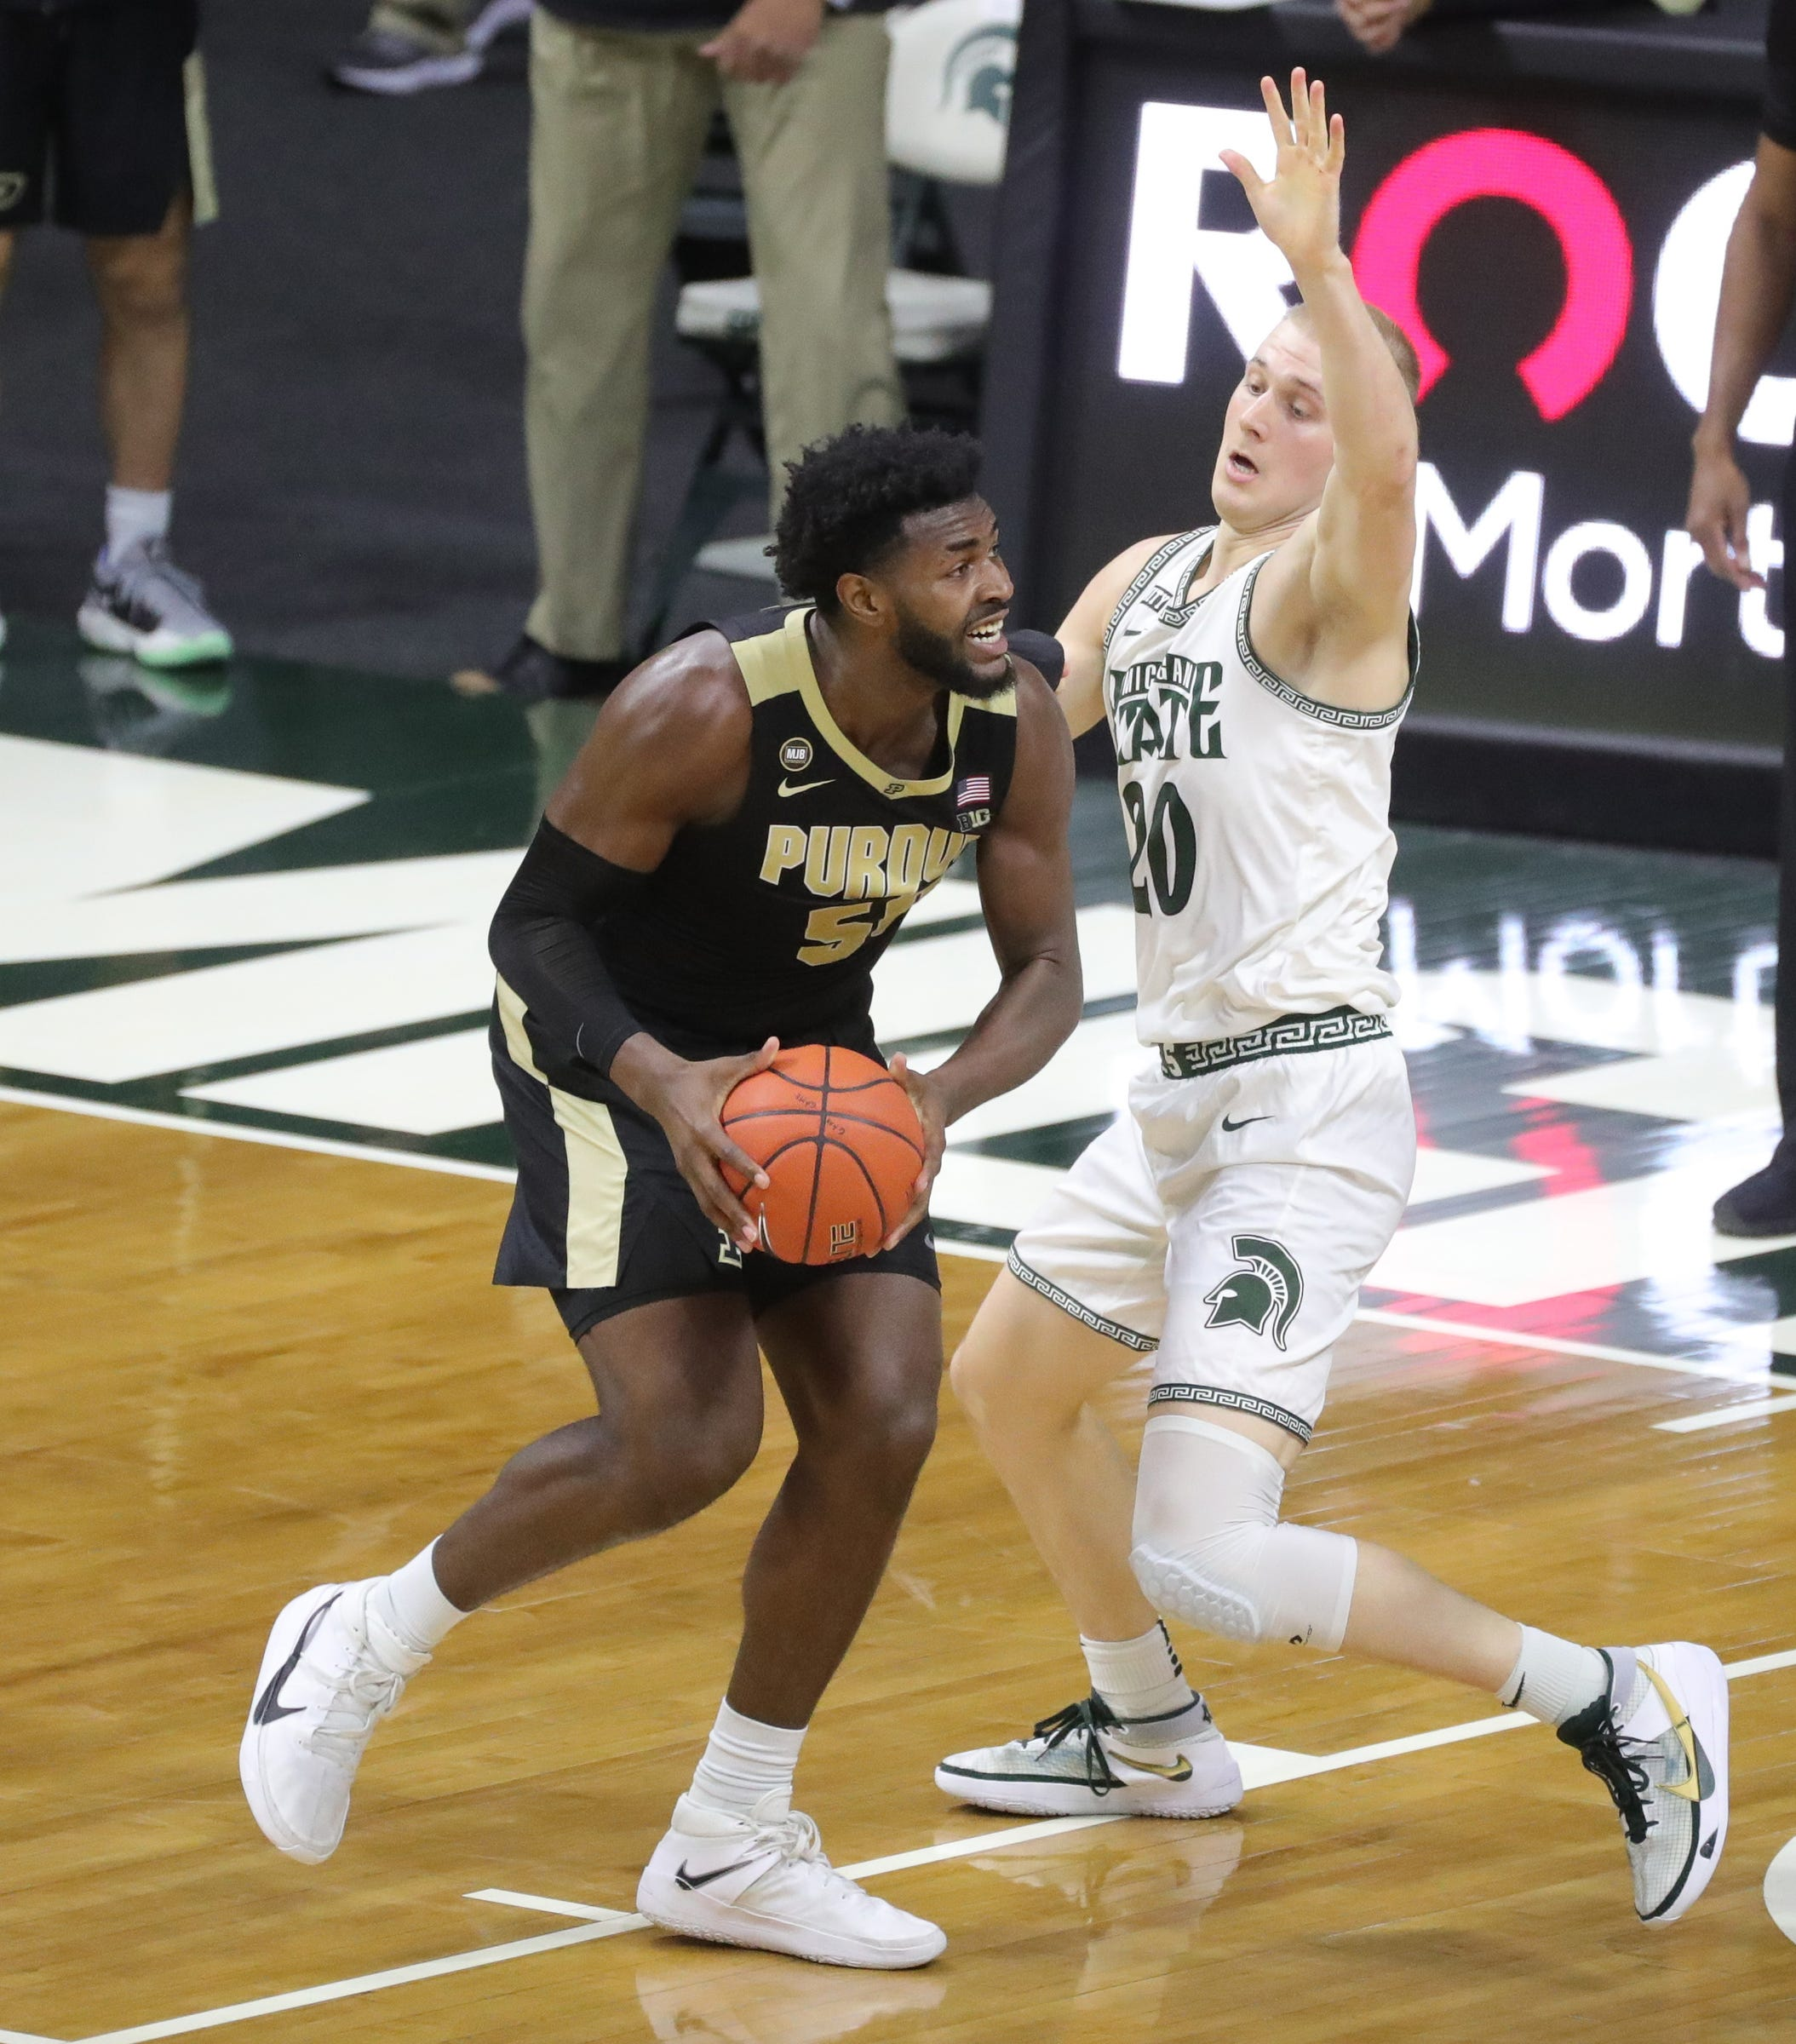 Michigan state striker Joy Hauser defends Purdue Boilermakers Trevion Williams during the second half at Priceline Center in East Lansing, Friday Jan 8, 2021.